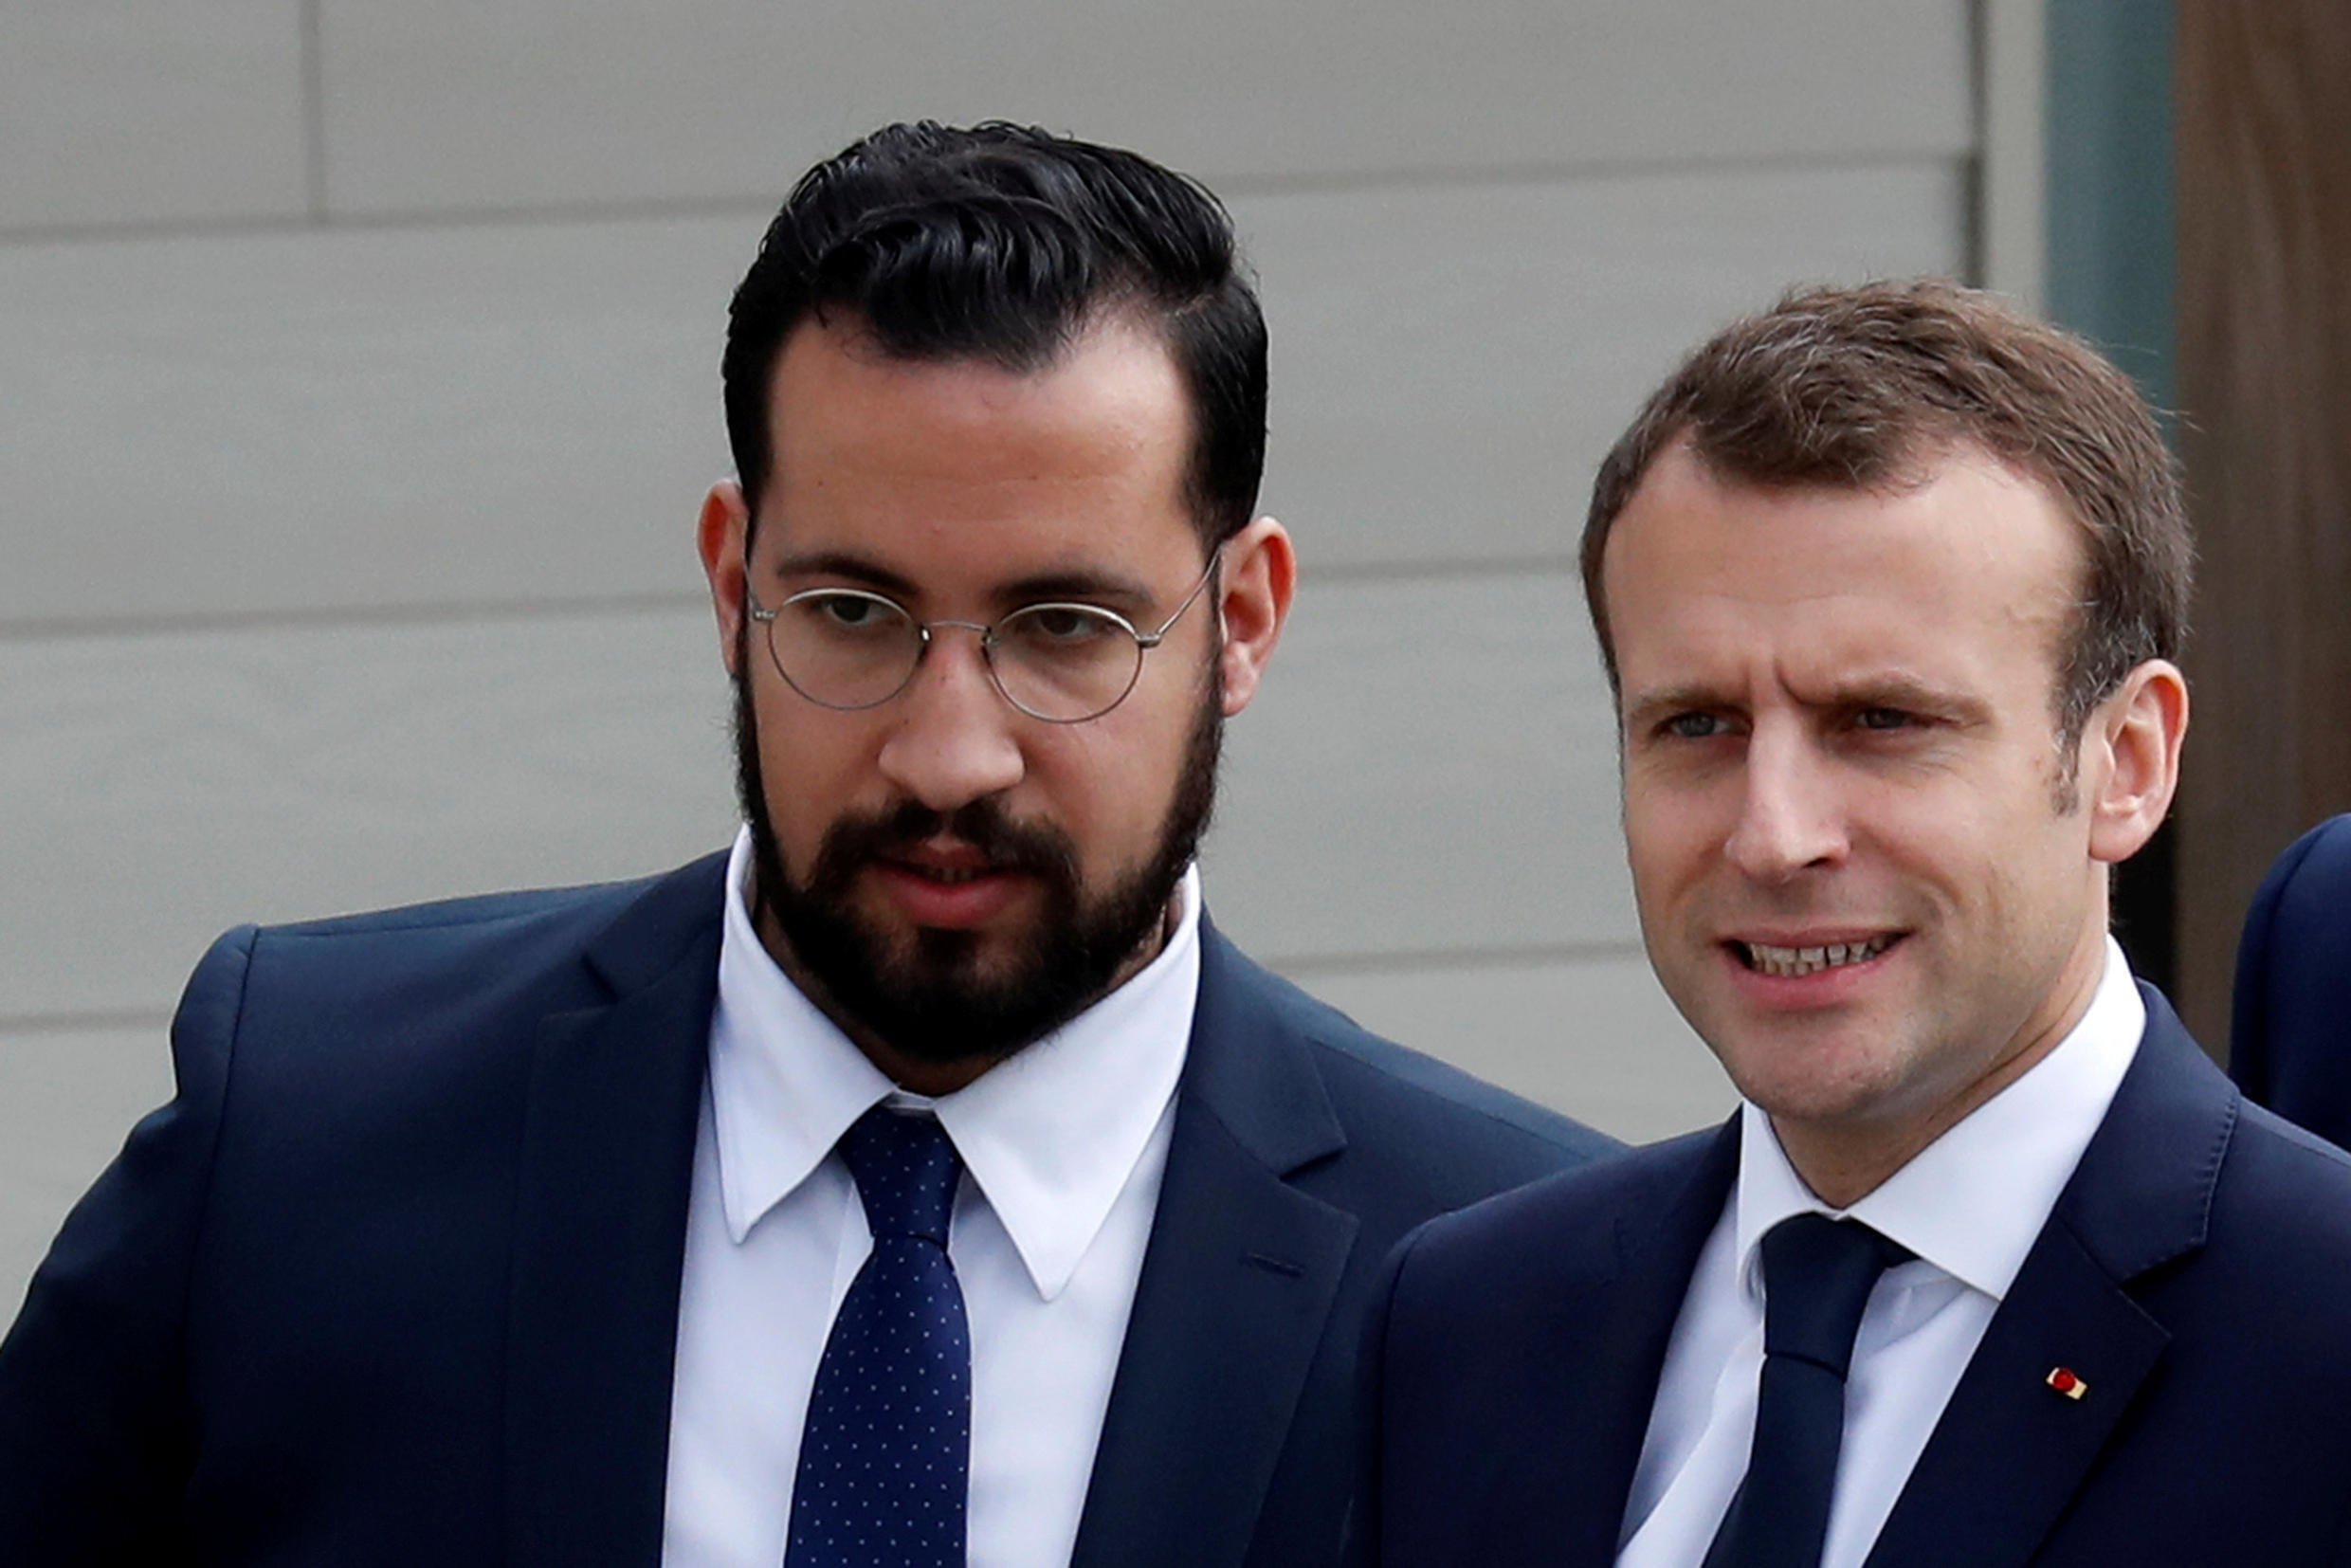 Macron and his then senior security officer Alexandre Benalla arrive at an elementary school to attend a one-hour interview with French news channel TF1, in Berd'huis, France, April 12, 2018. Picture taken April 12, 2018.